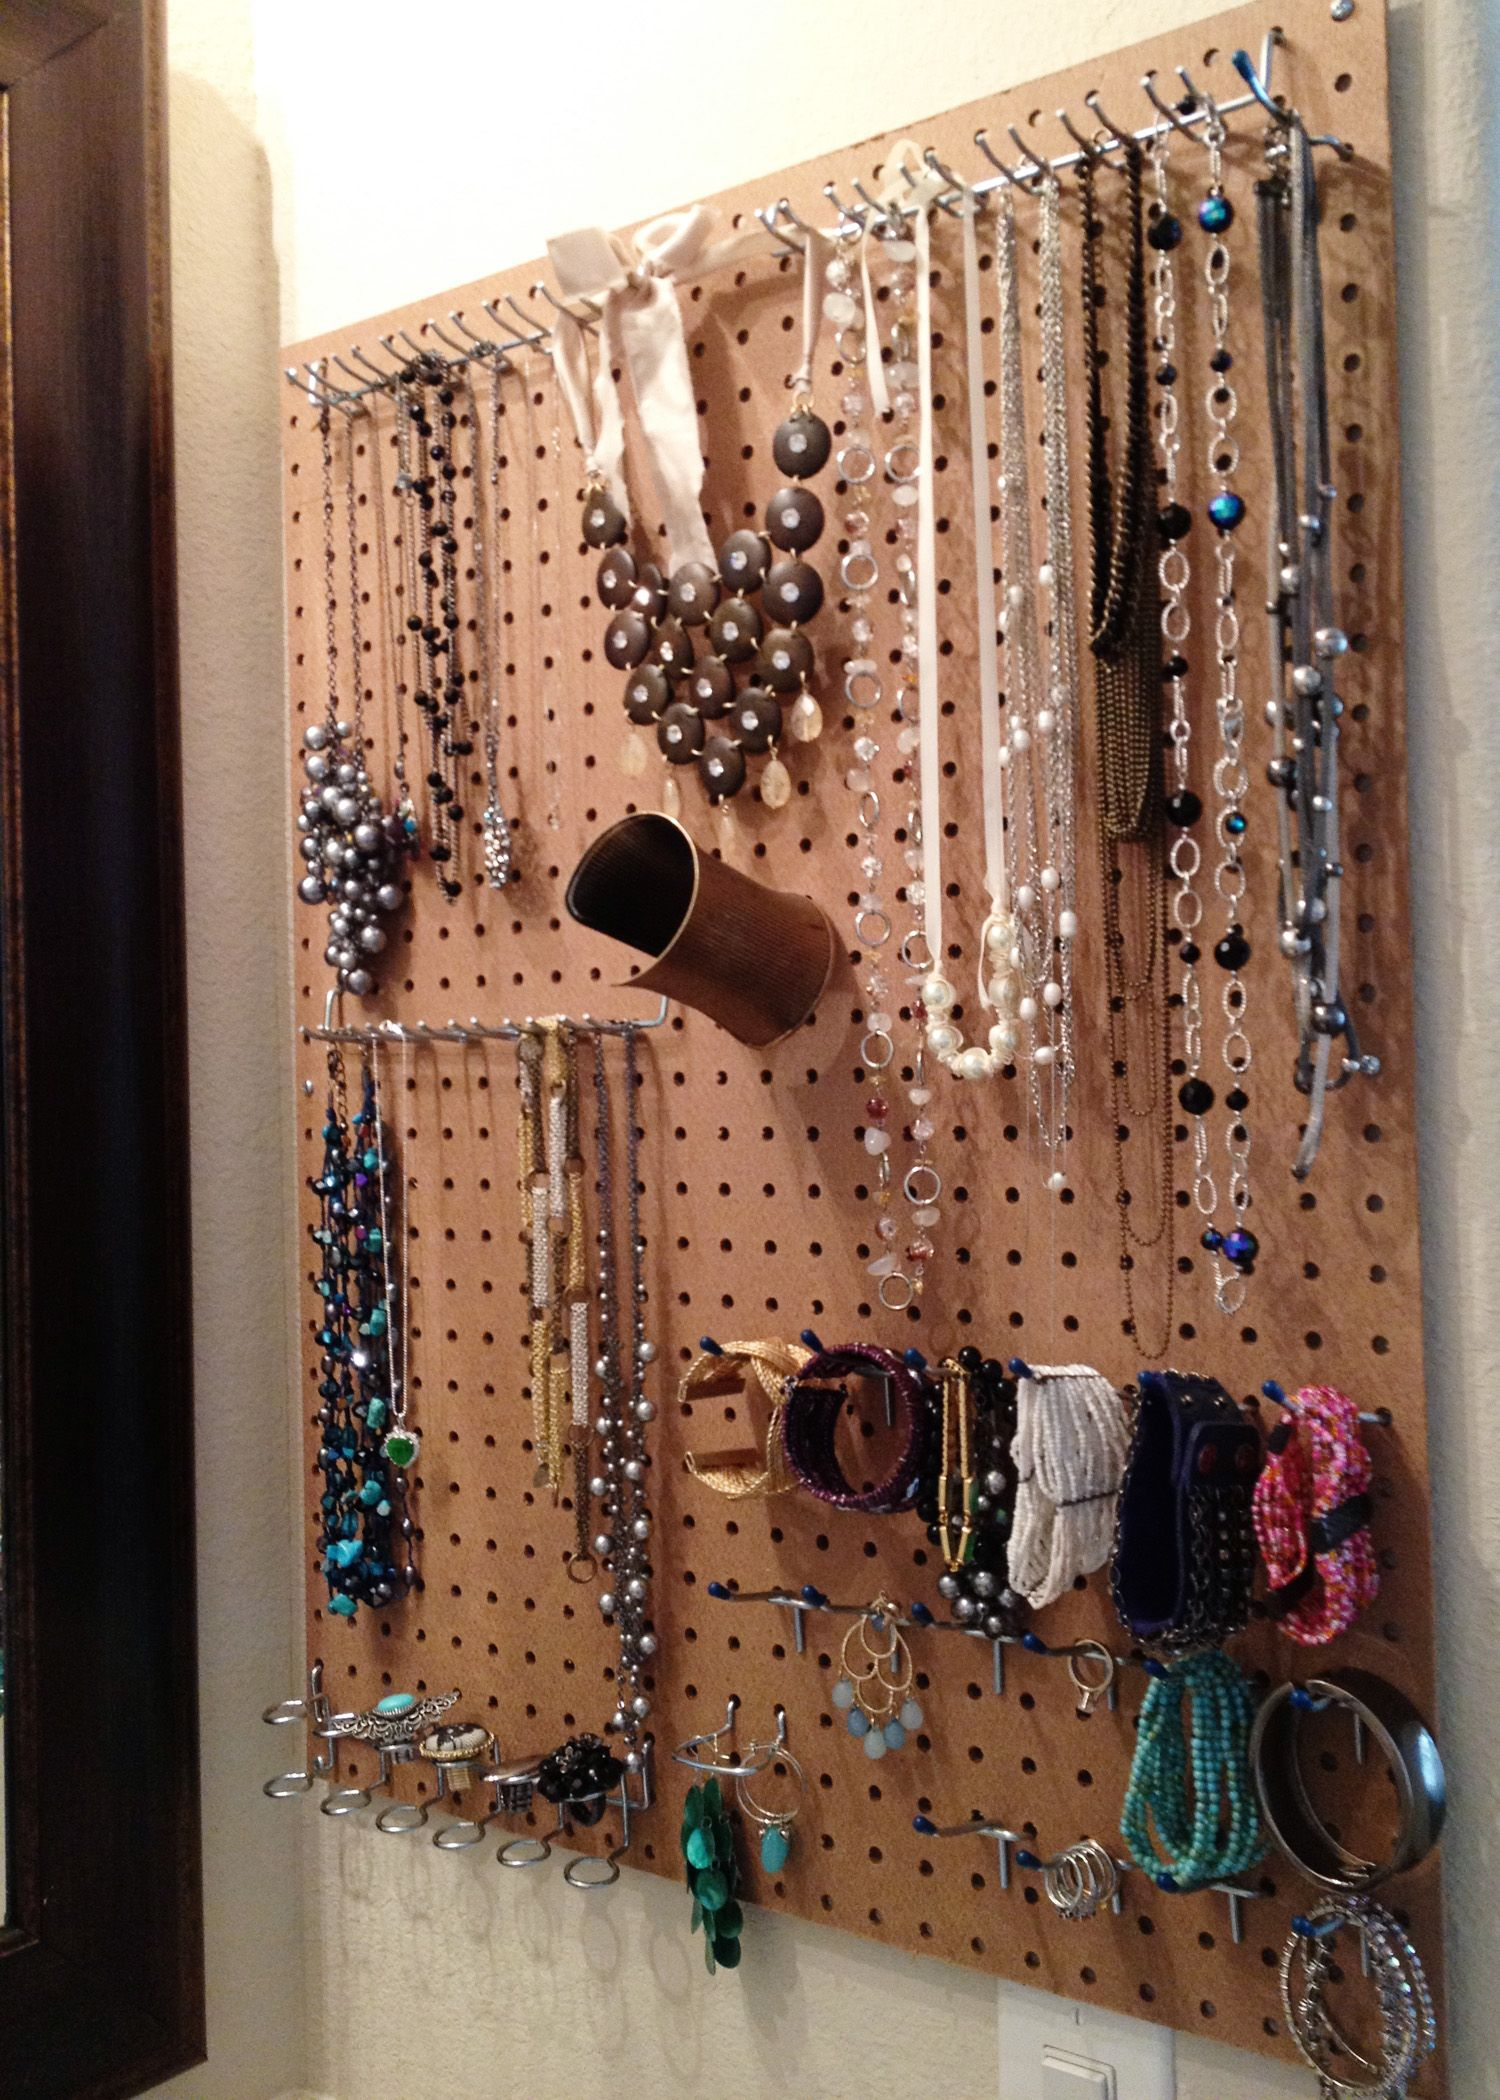 Pegboard jewelry organizer All of the supplies used to make this